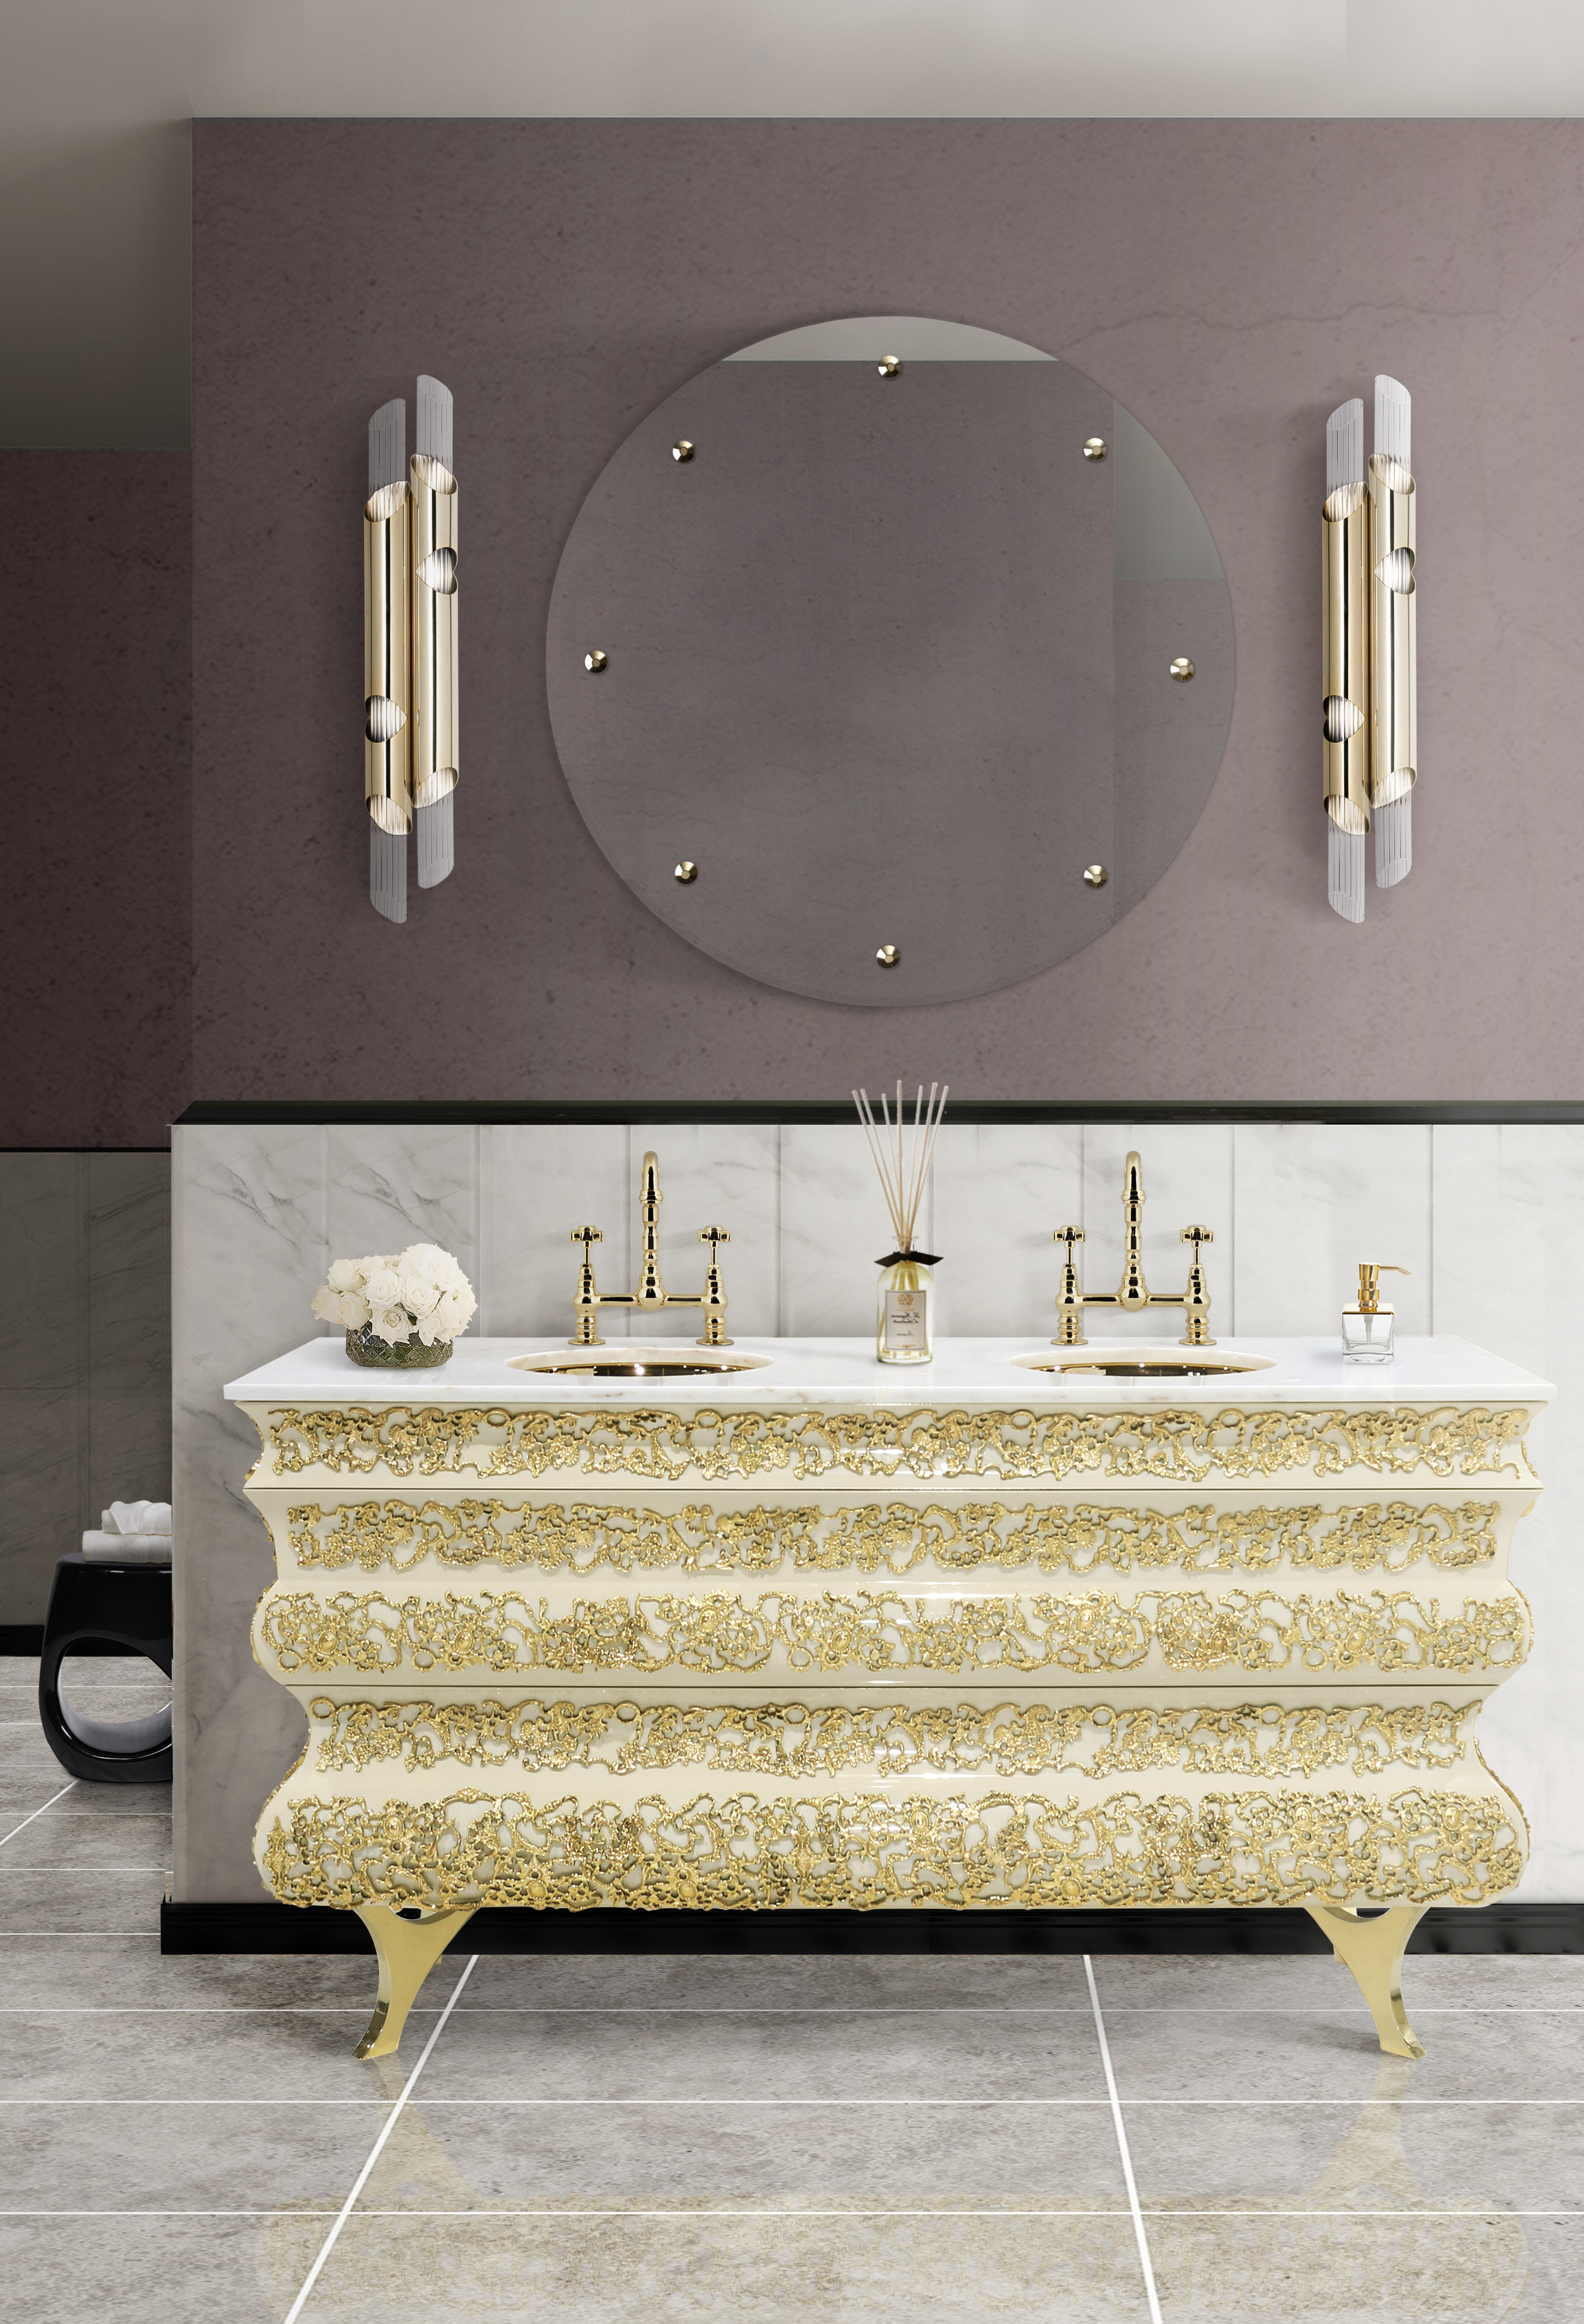 Bathroom Lighting Trends You Need To Follow In 2020